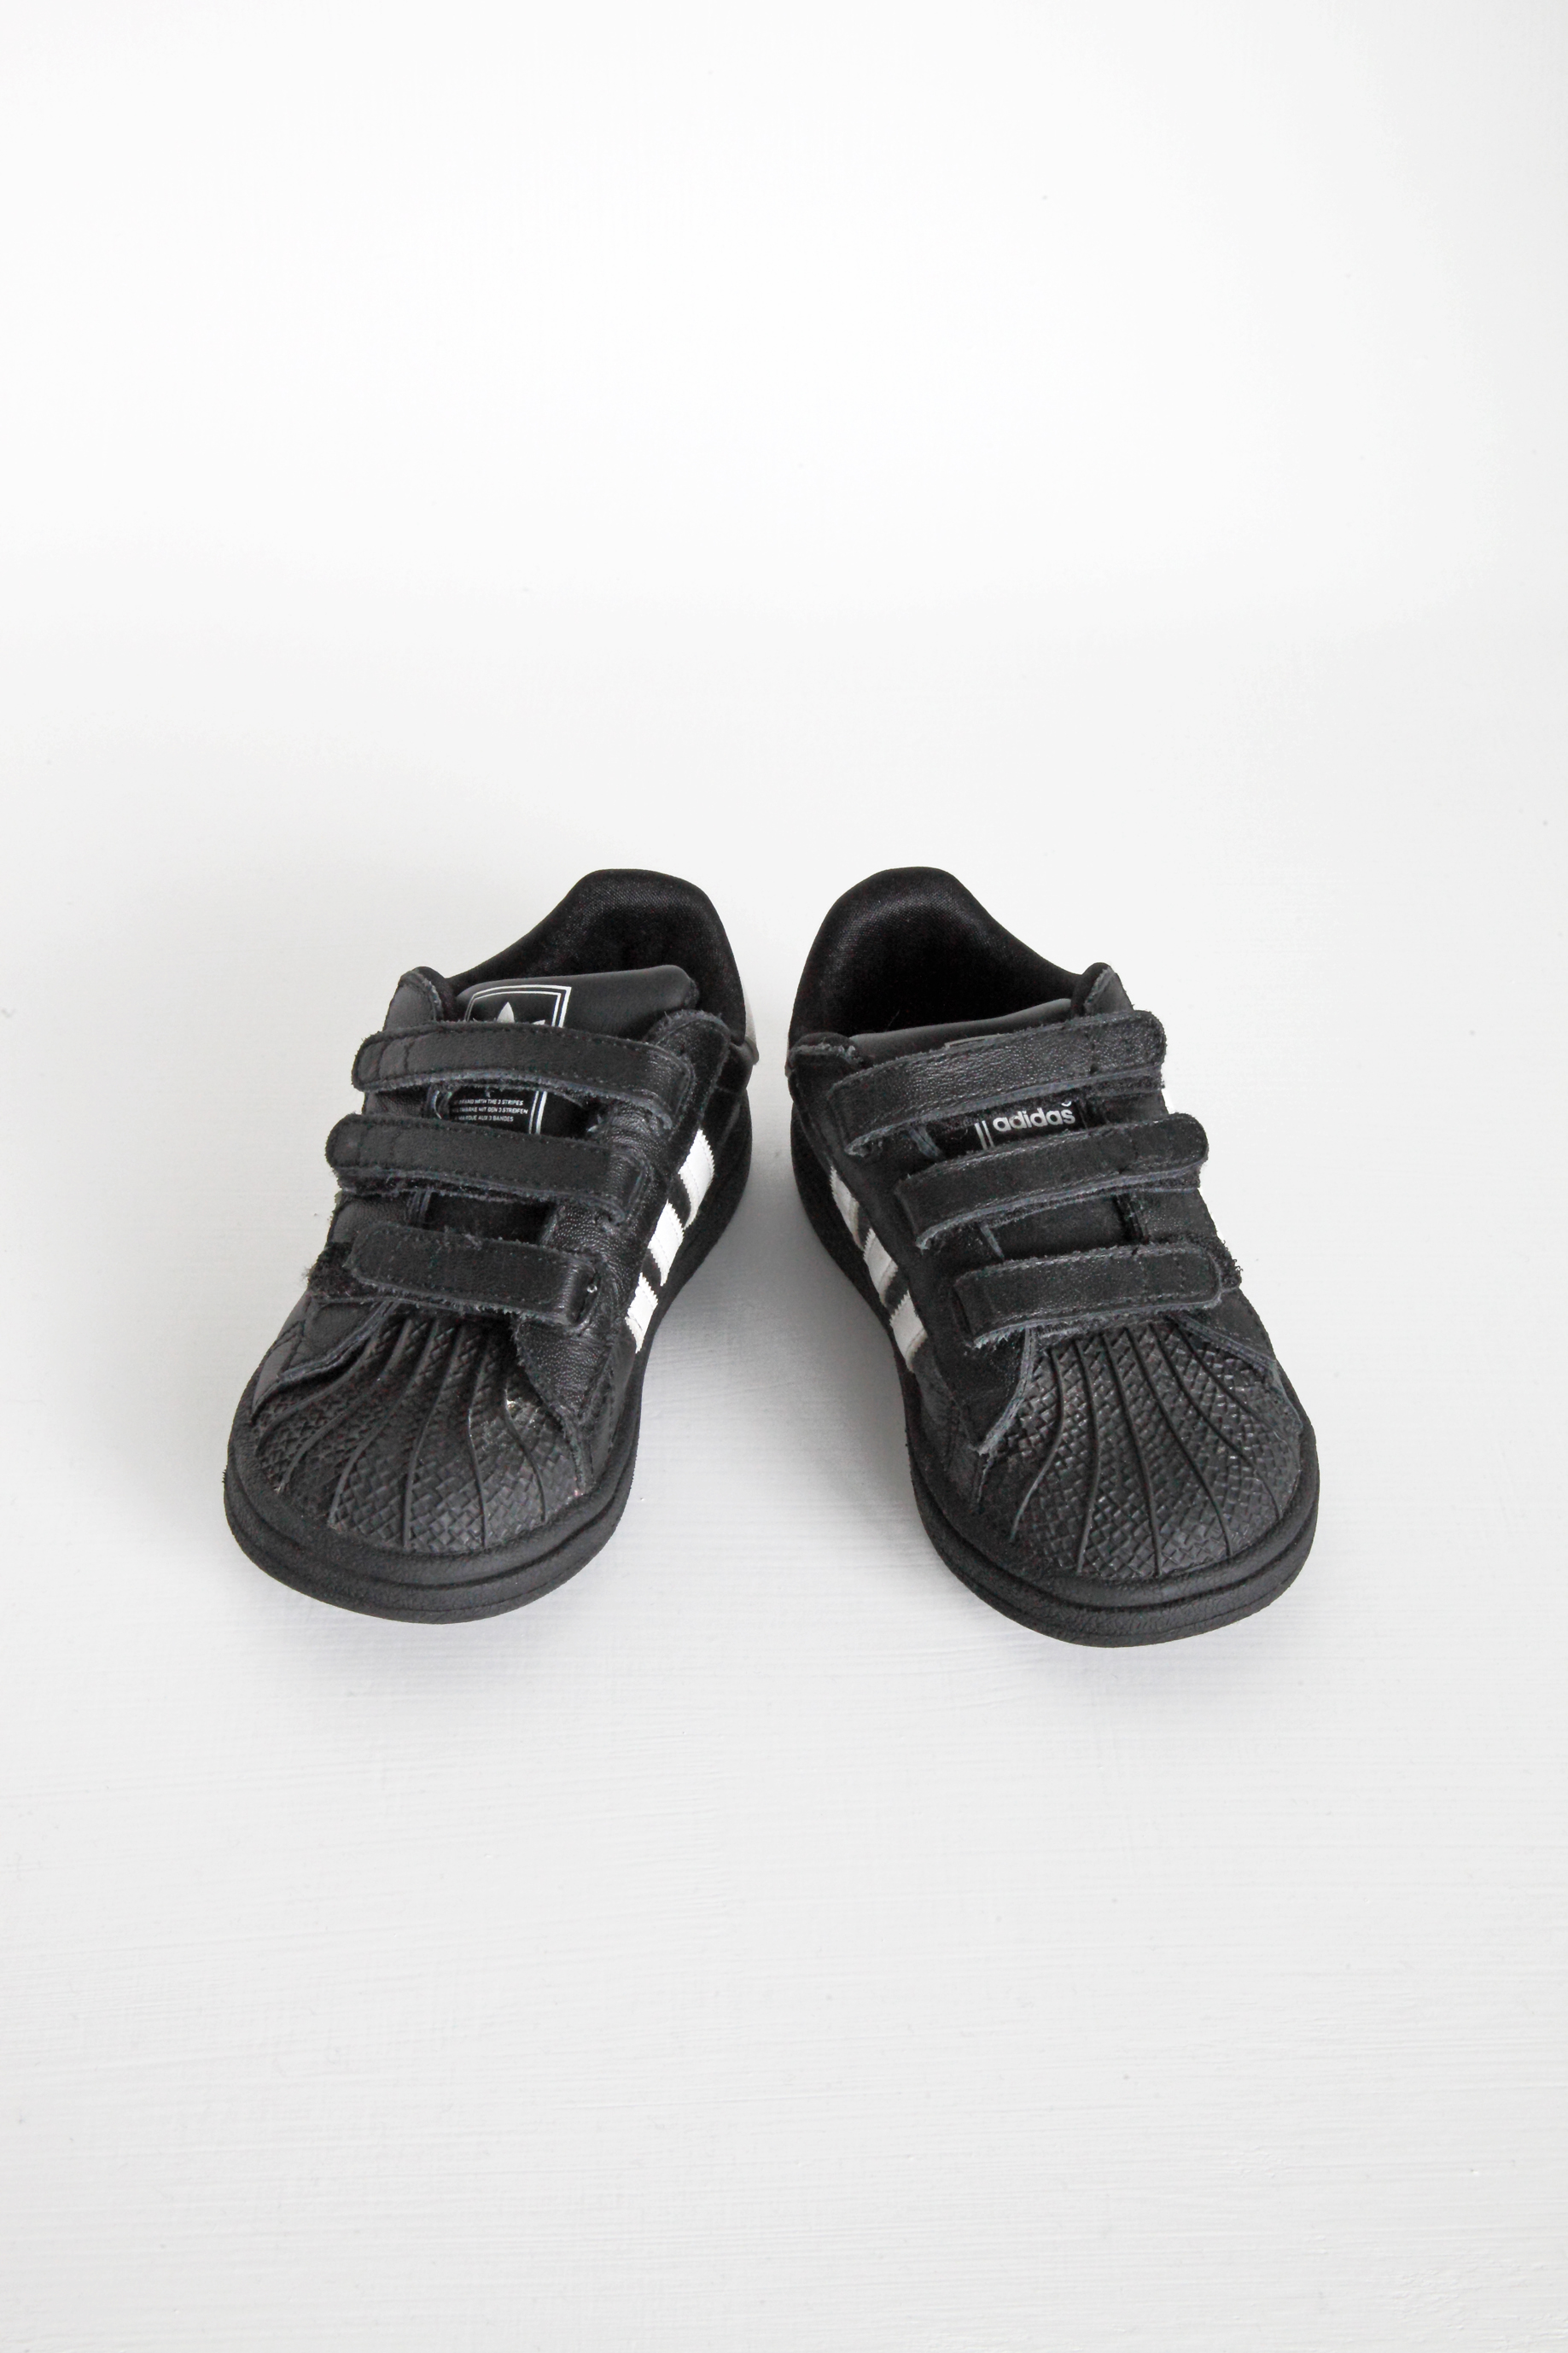 Black Trainers - Adidas - Size 7.5